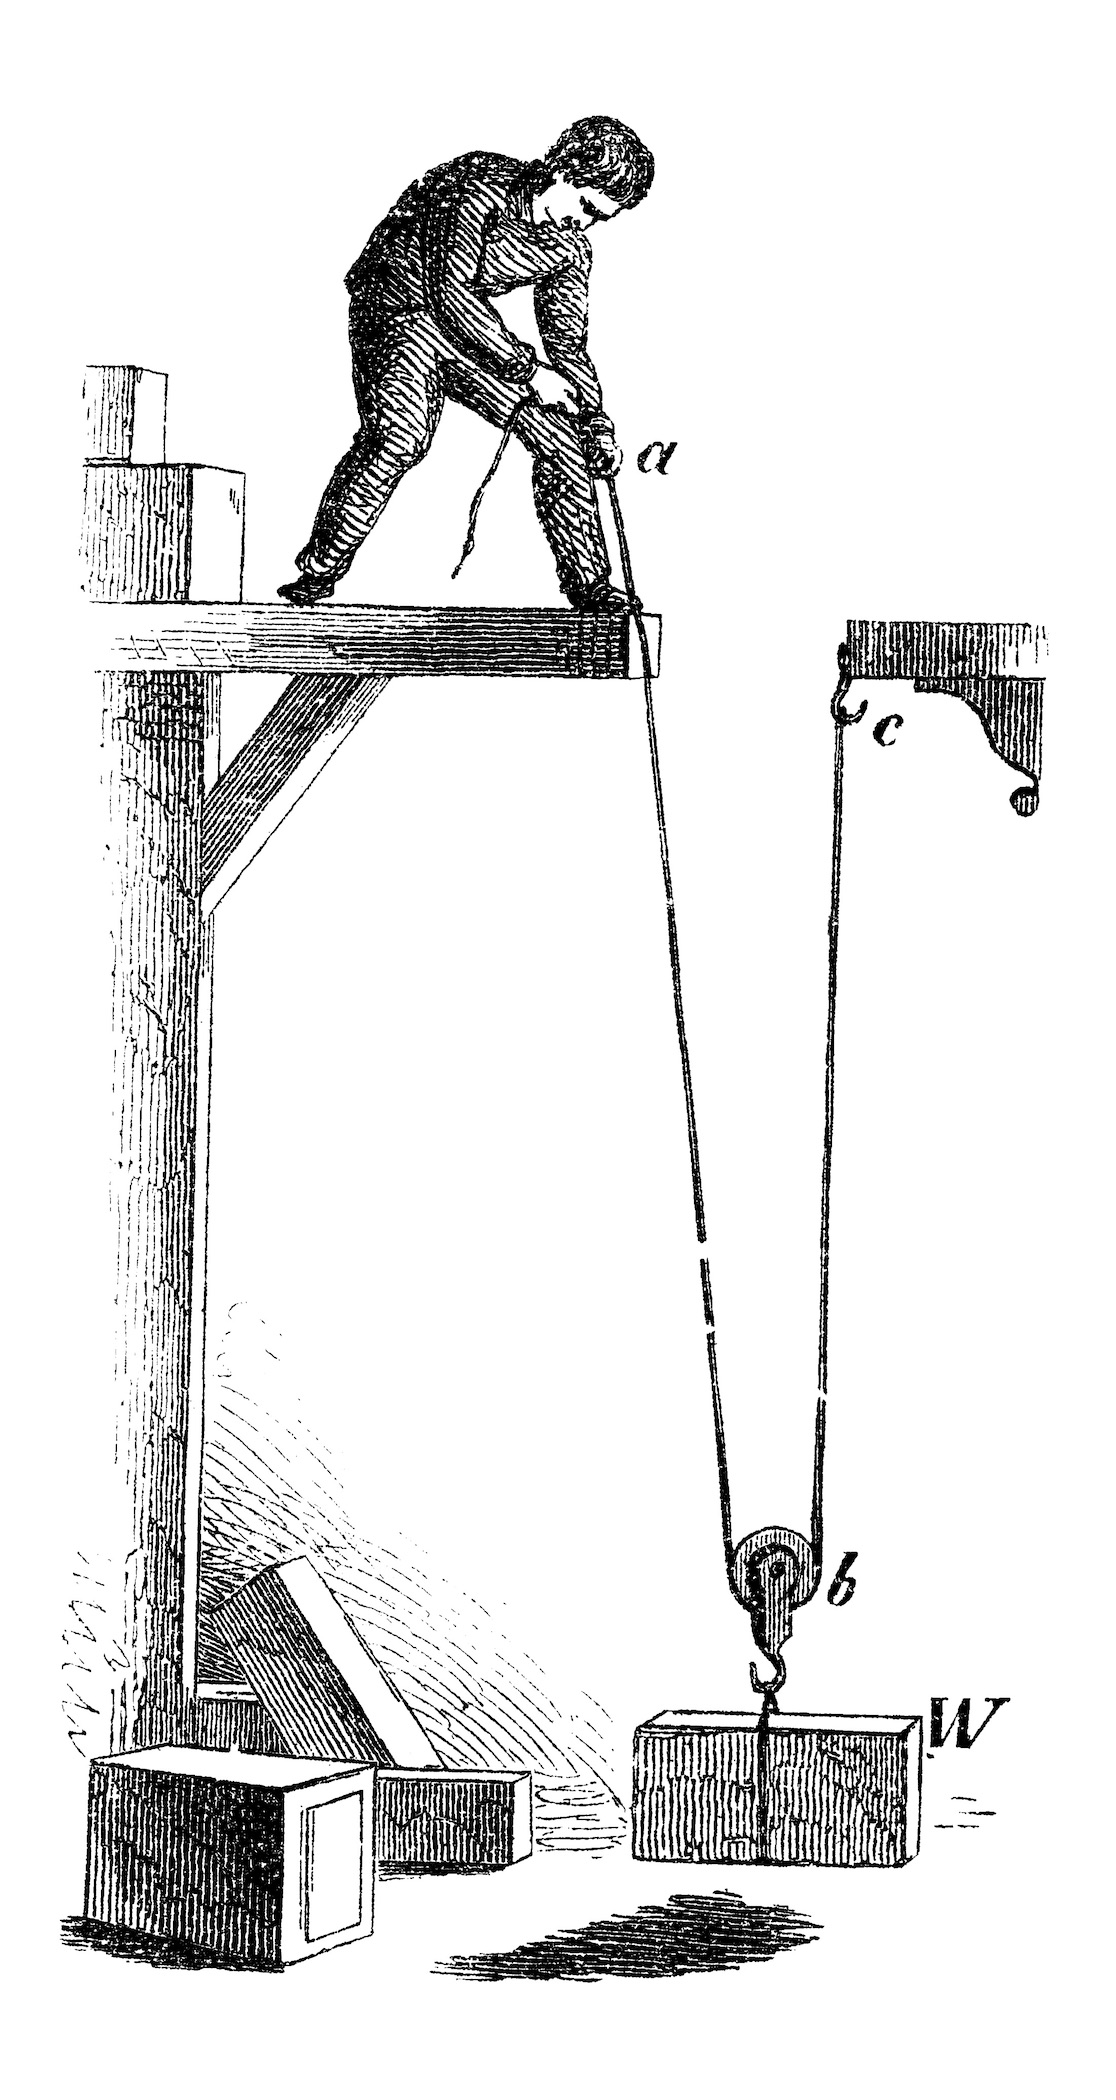 Antique engraved illustration of construction joists and pully